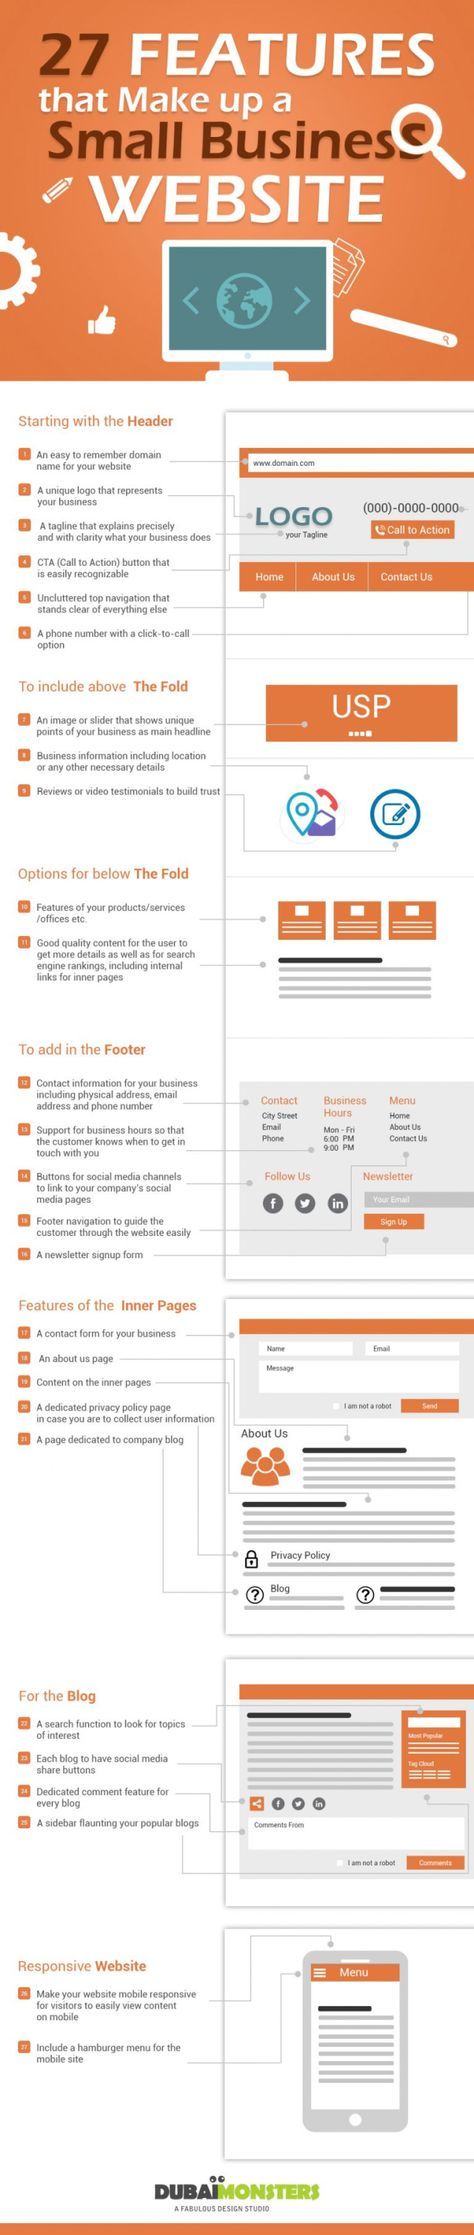 27 Features That Make Up a Successful Small Business Website #Infographic  Check out http://www.imedia.click for more amazing info on all things effective online marketing